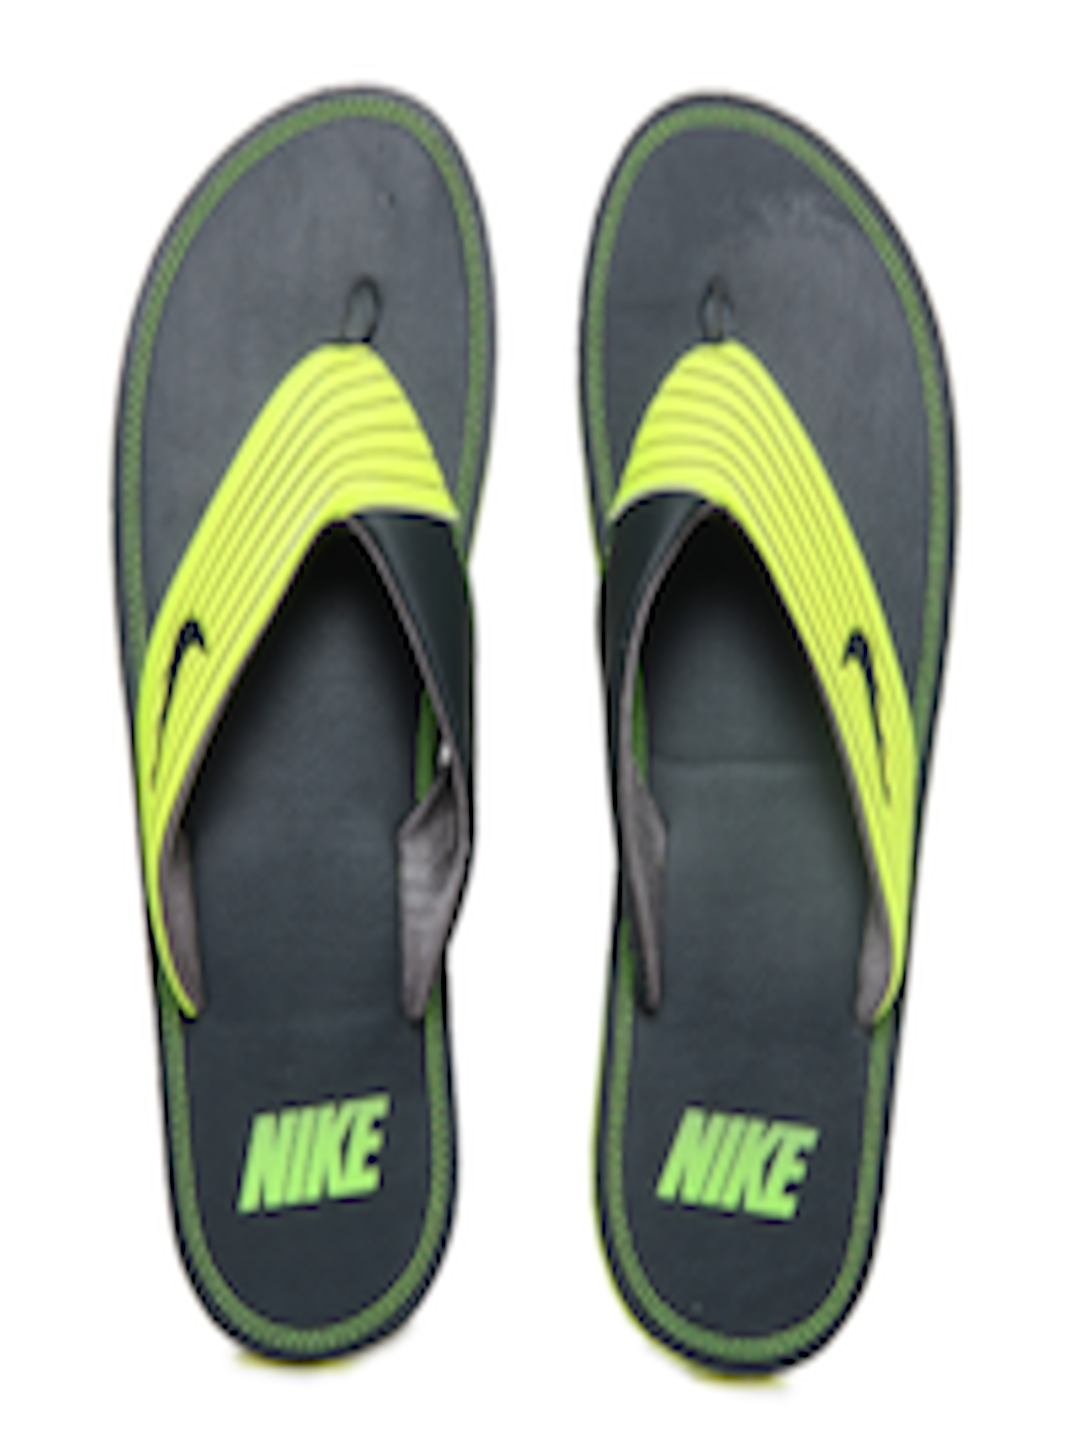 60bc739acff1 Buy Nike Men Neon Green   Grey Chroma Thong III Flip Flops - Flip Flops for  Men 233709